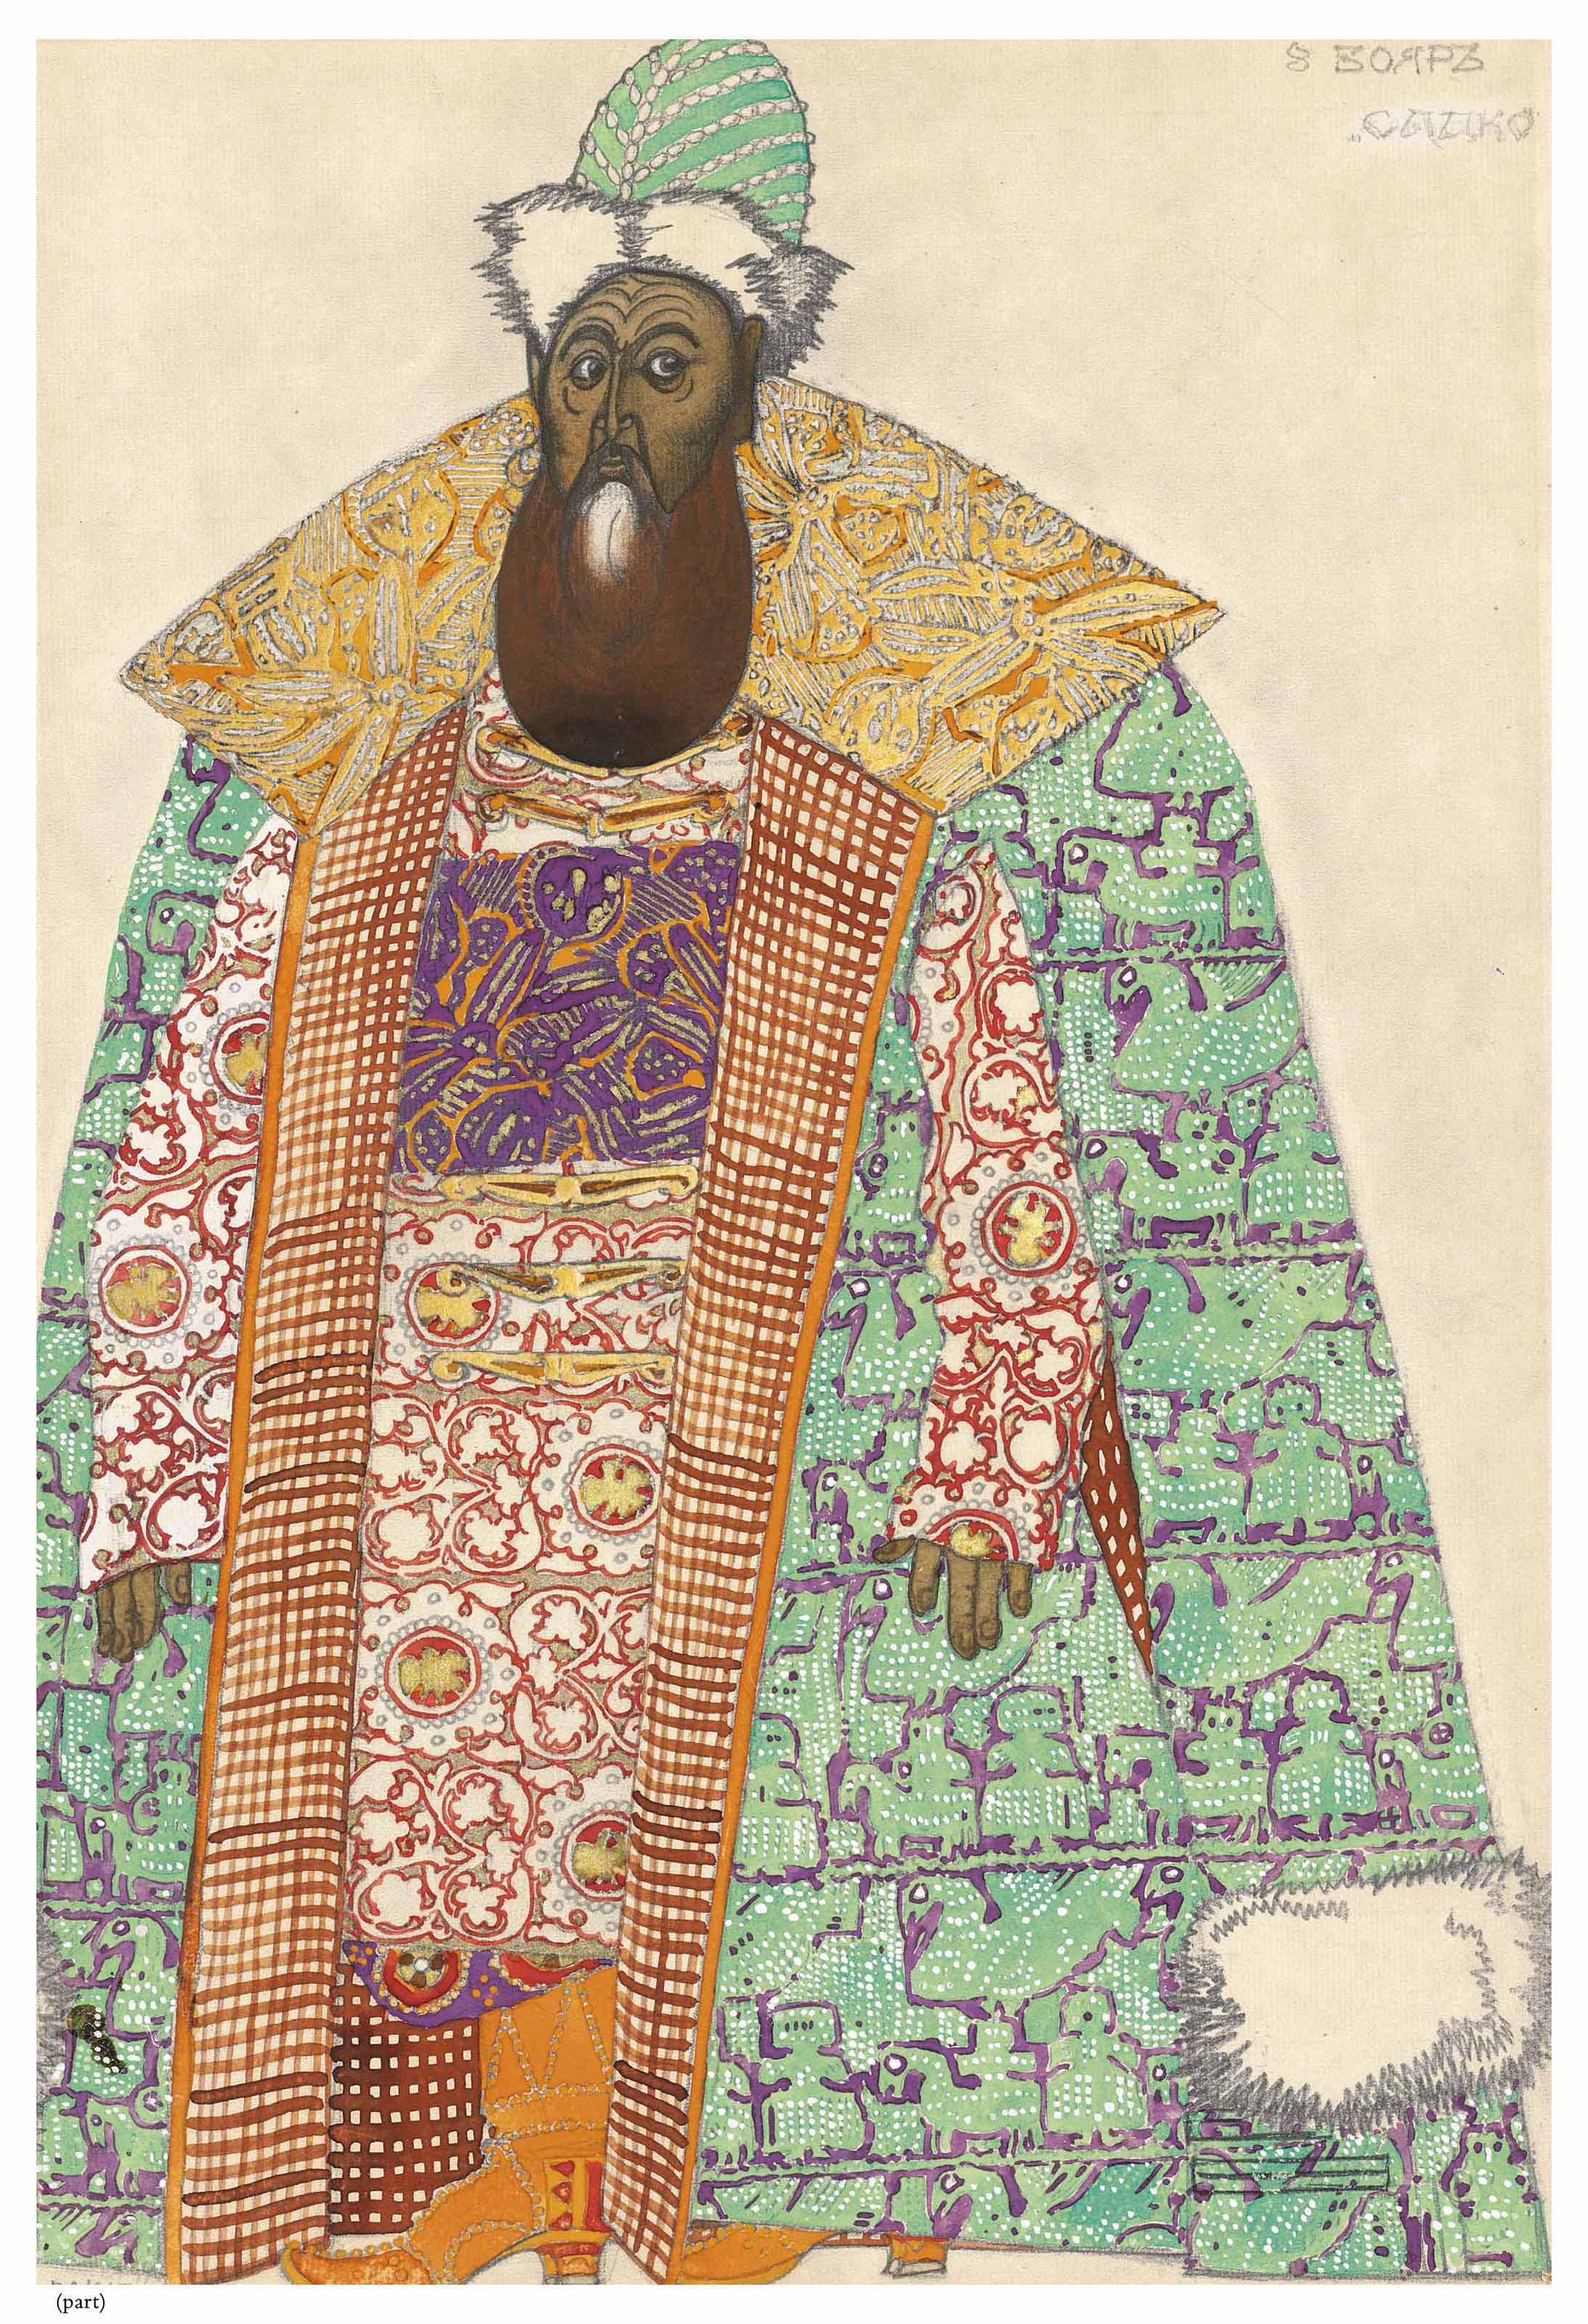 Costume design for 'Sadko': Boyar